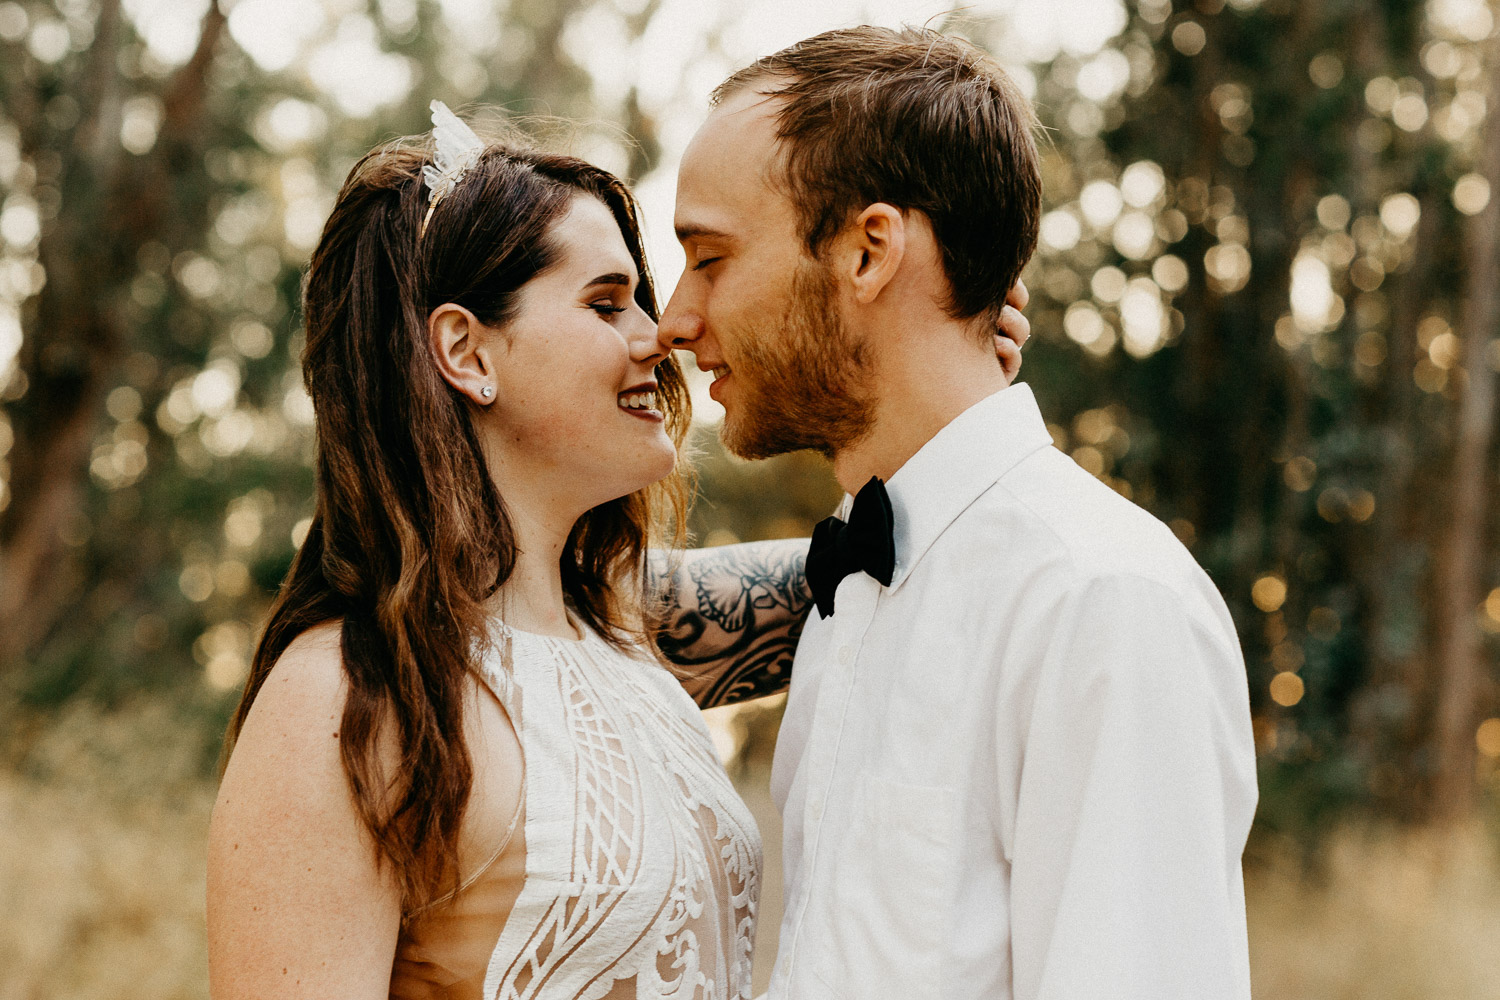 Image of bride and groom have nose touches